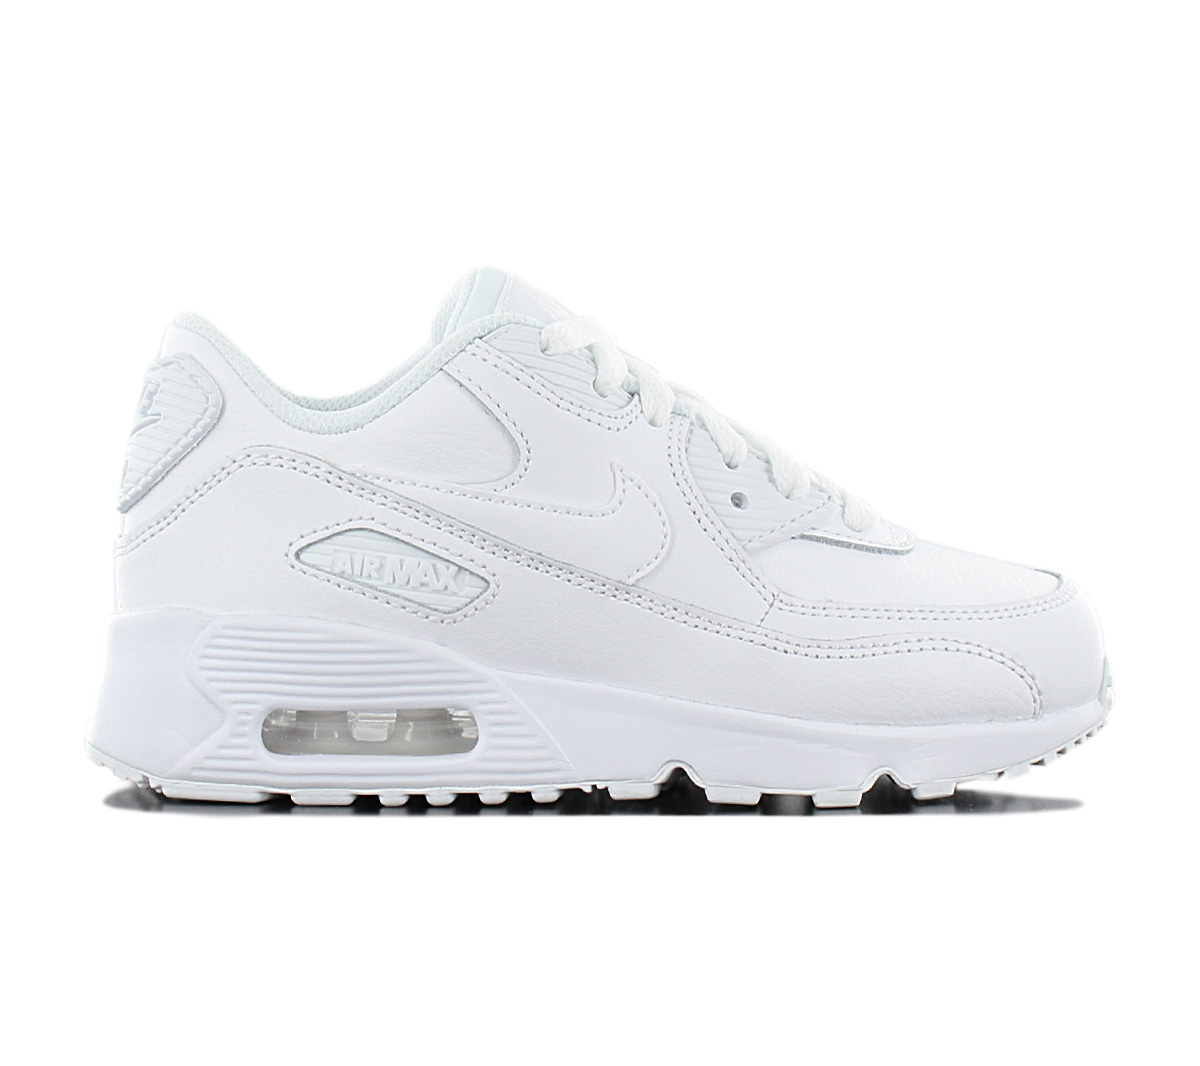 Details about Nike air max 90 Leather Children Sneaker 833414 100 Leather White Shoes New